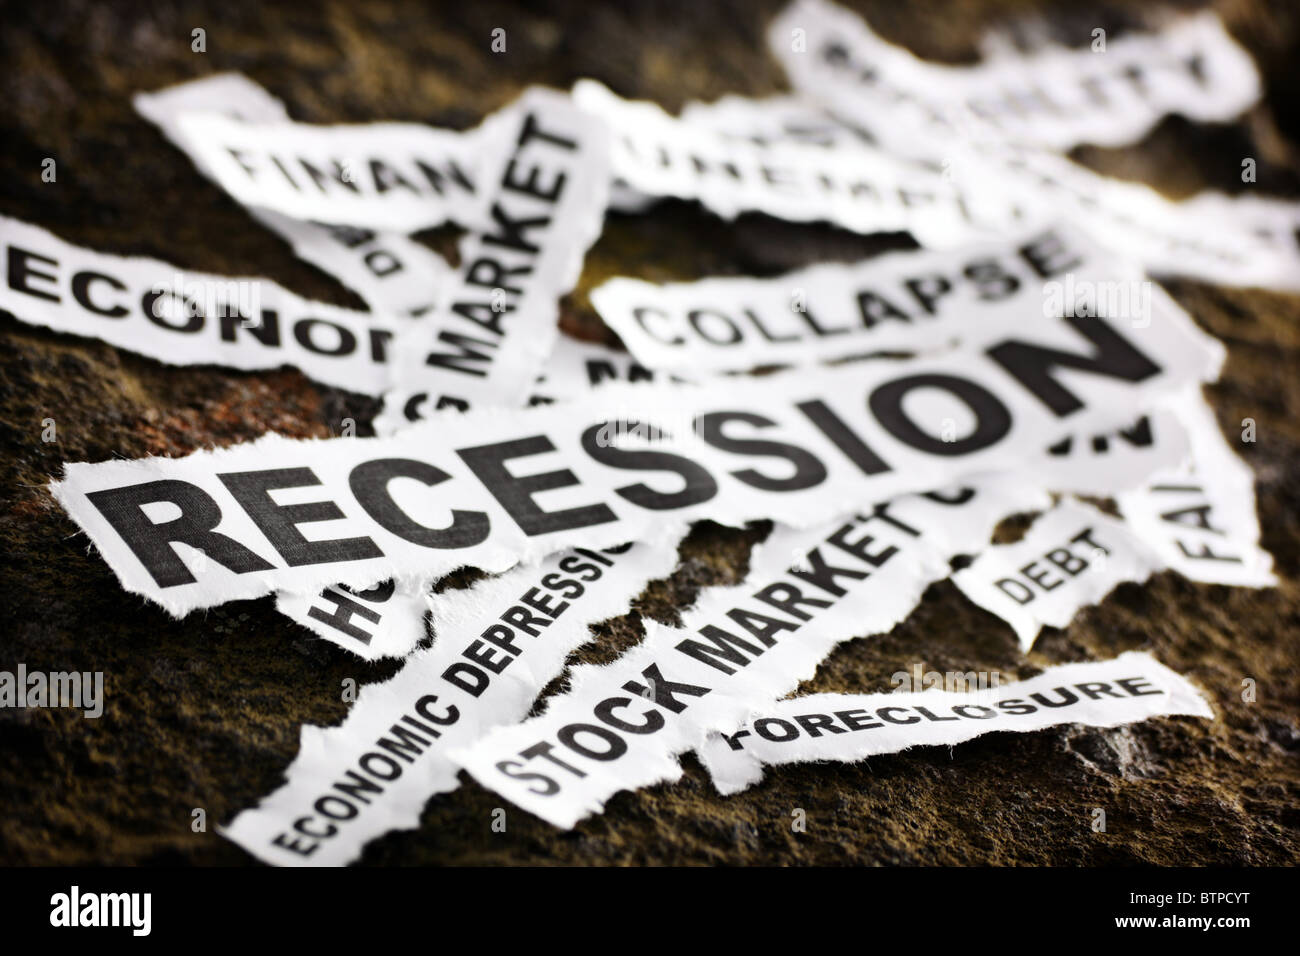 Recession - Stock Image